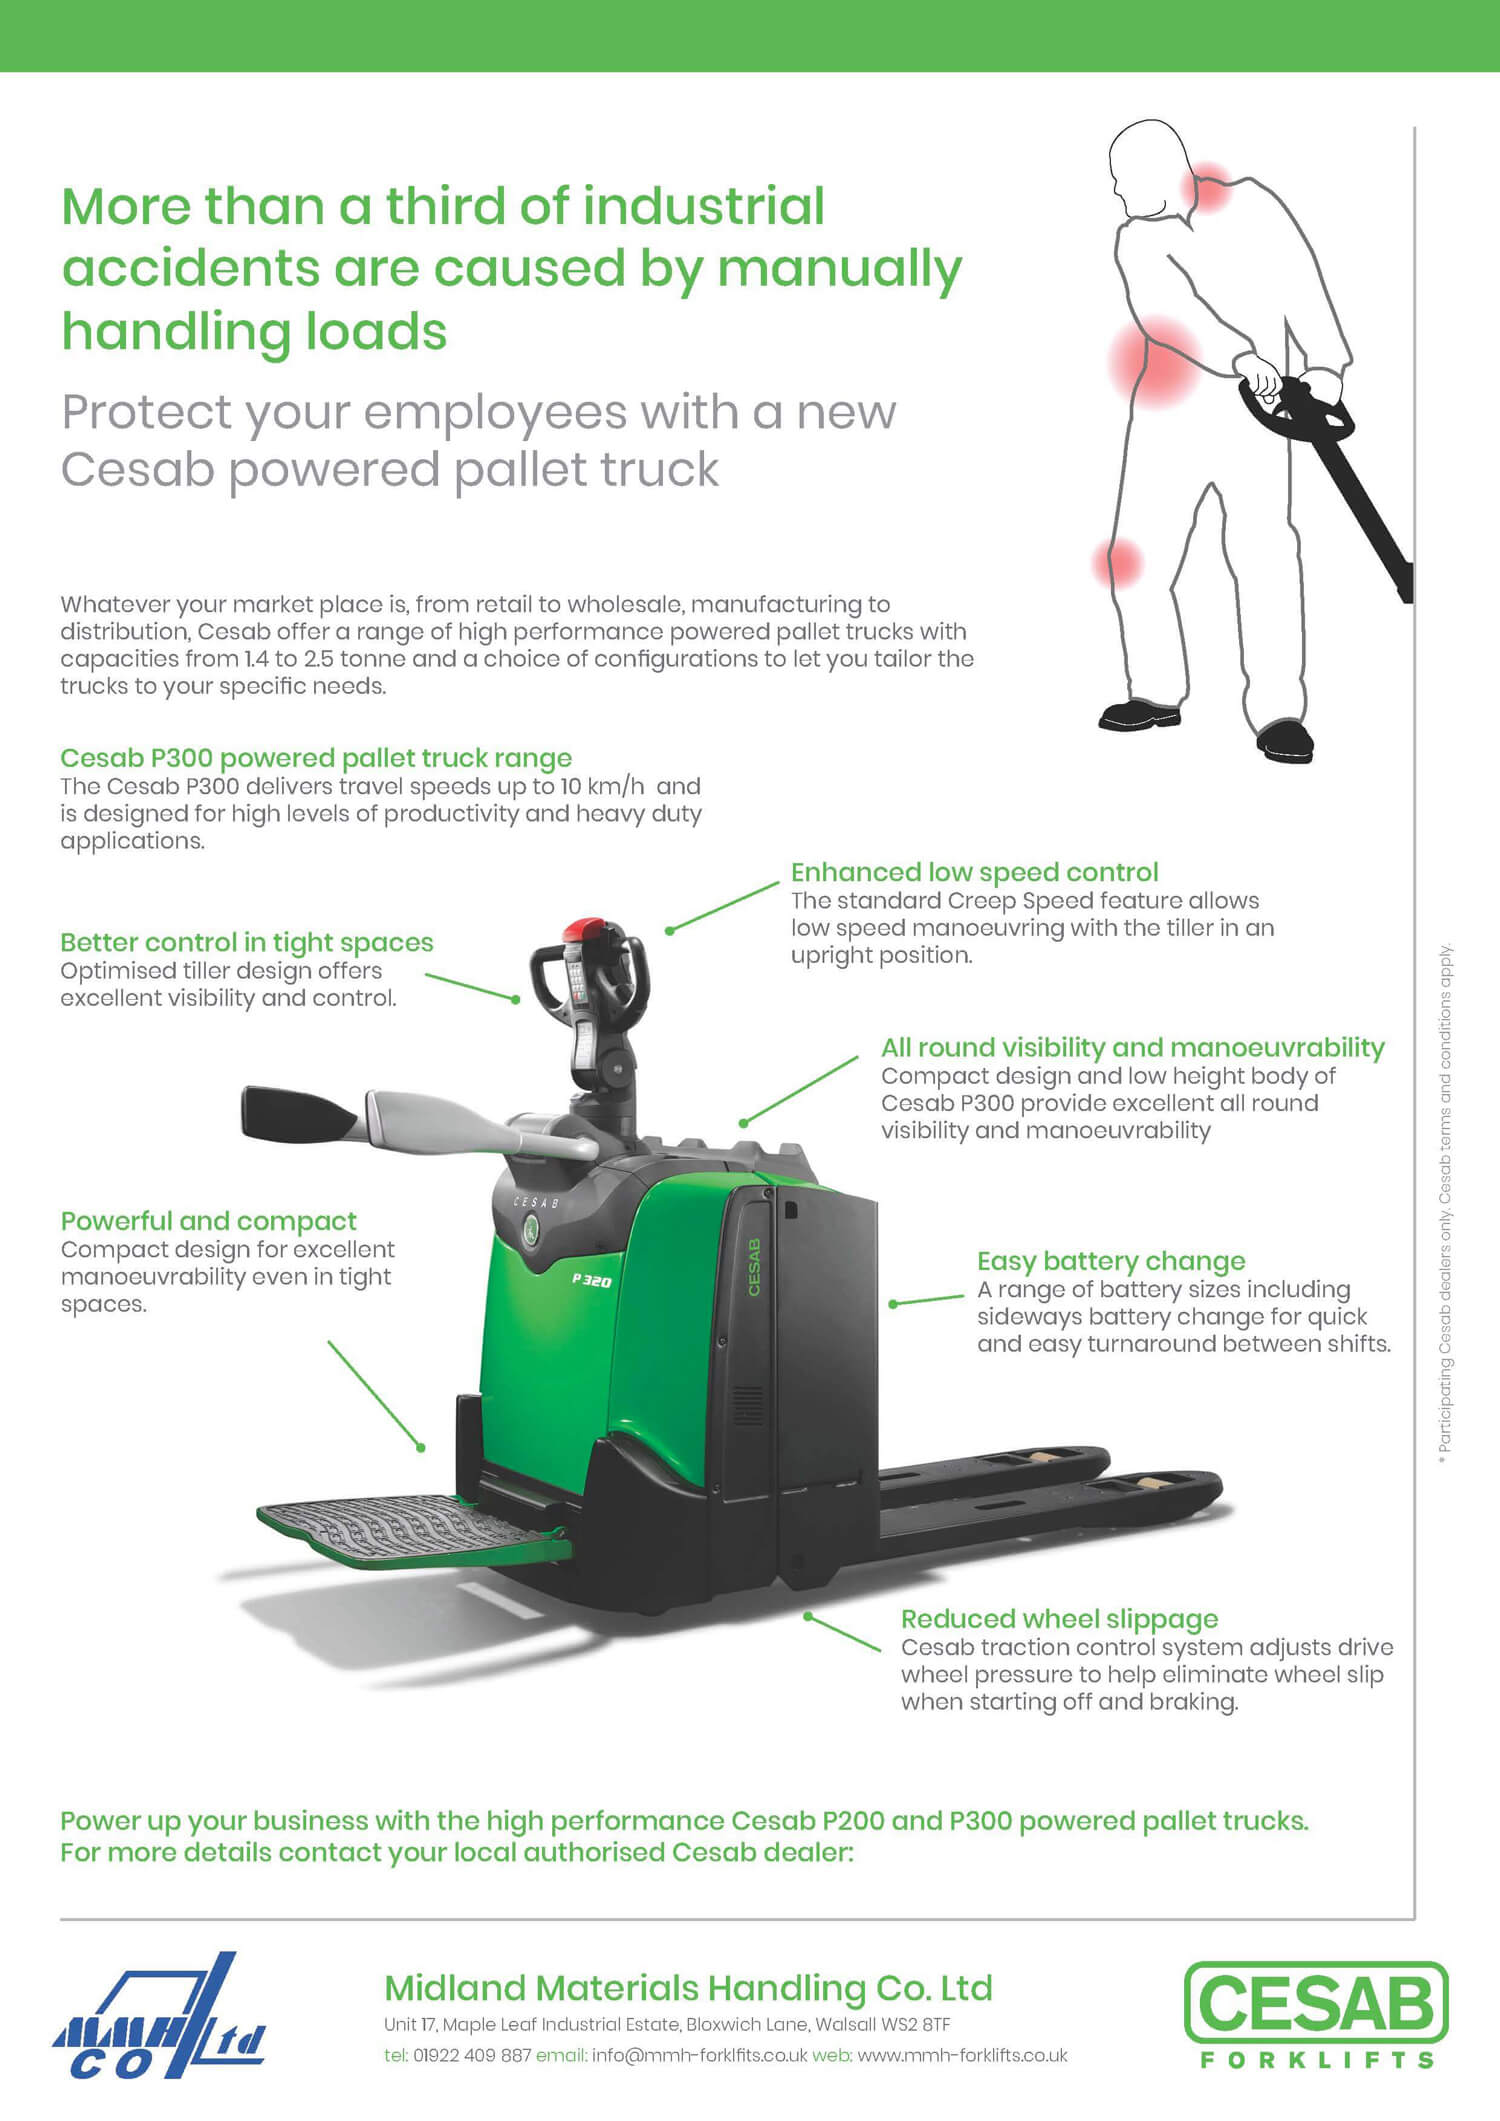 Protect your employees with a new Cesab powered pallet truck